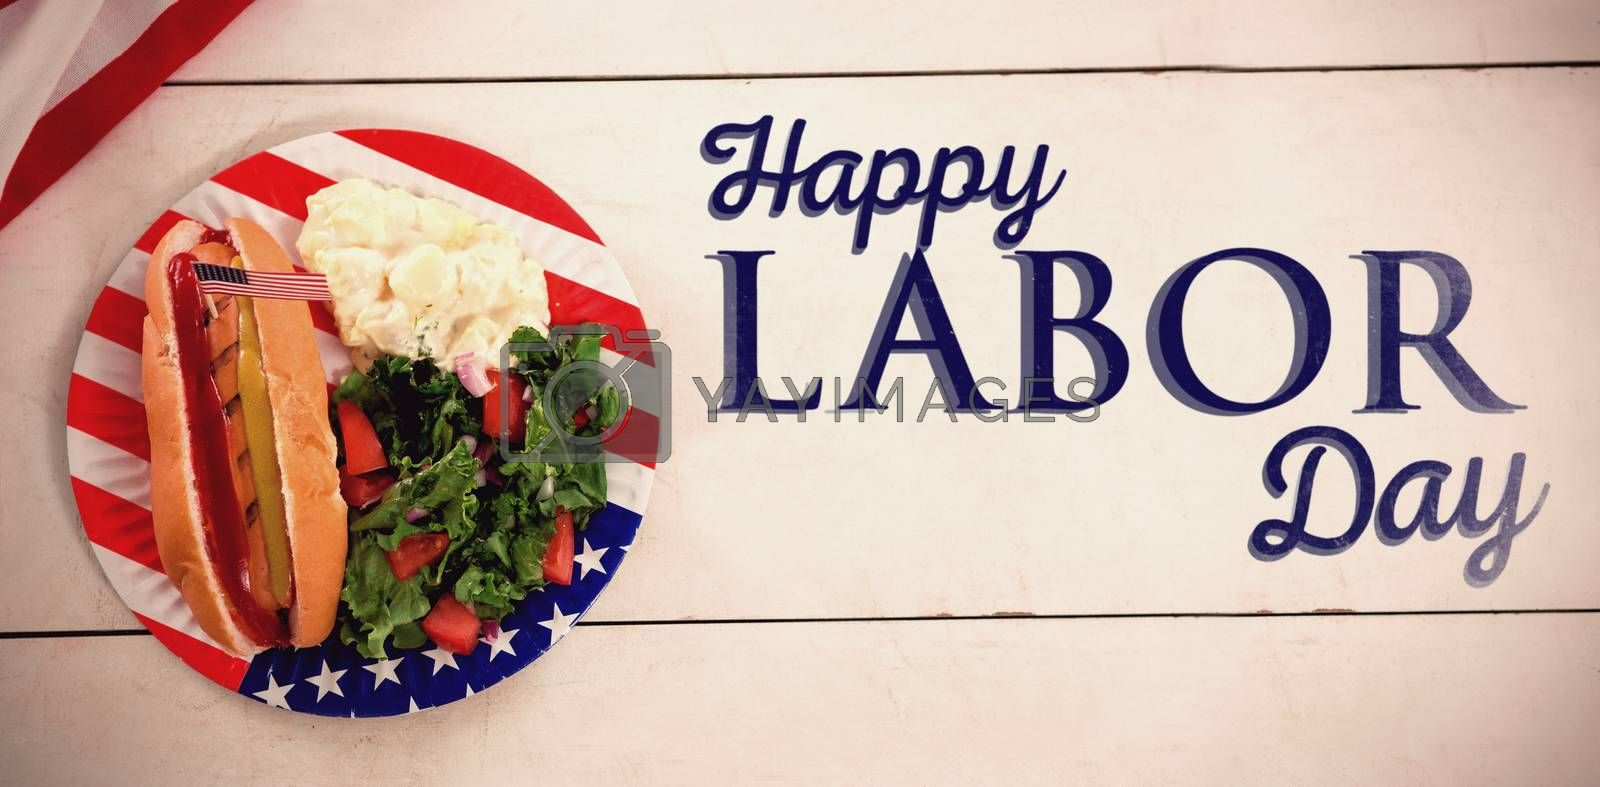 Composite image of poster of happy labor day text by Wavebreakmedia